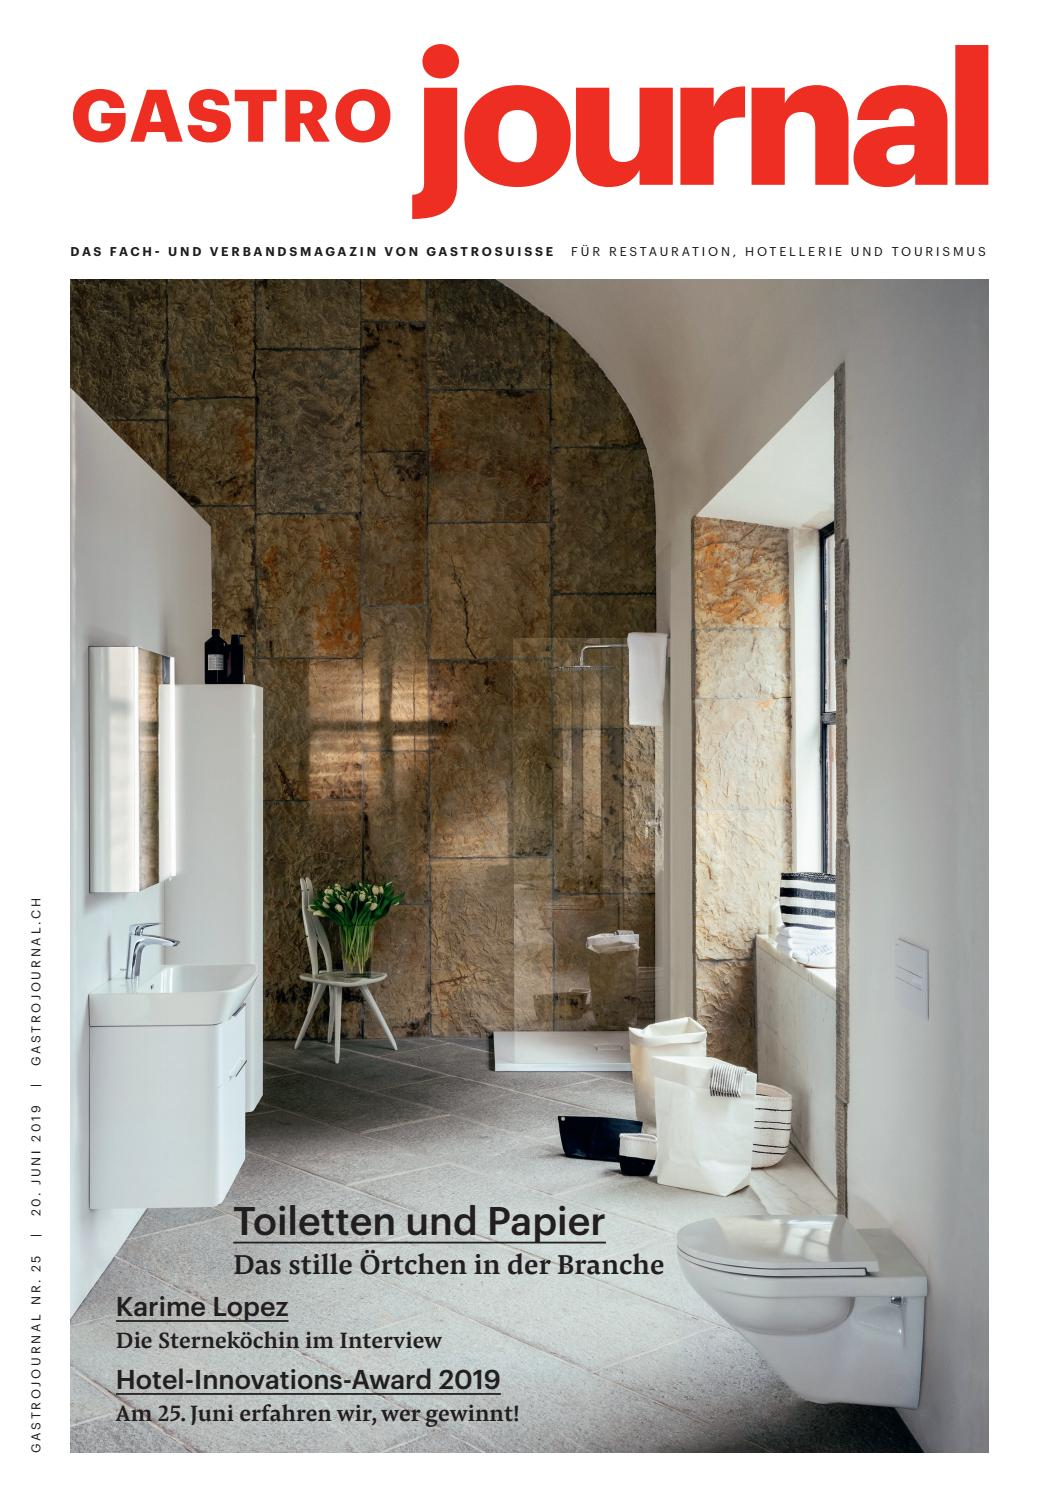 Gastrojournal 25 2019 By Gastrojournal Issuu